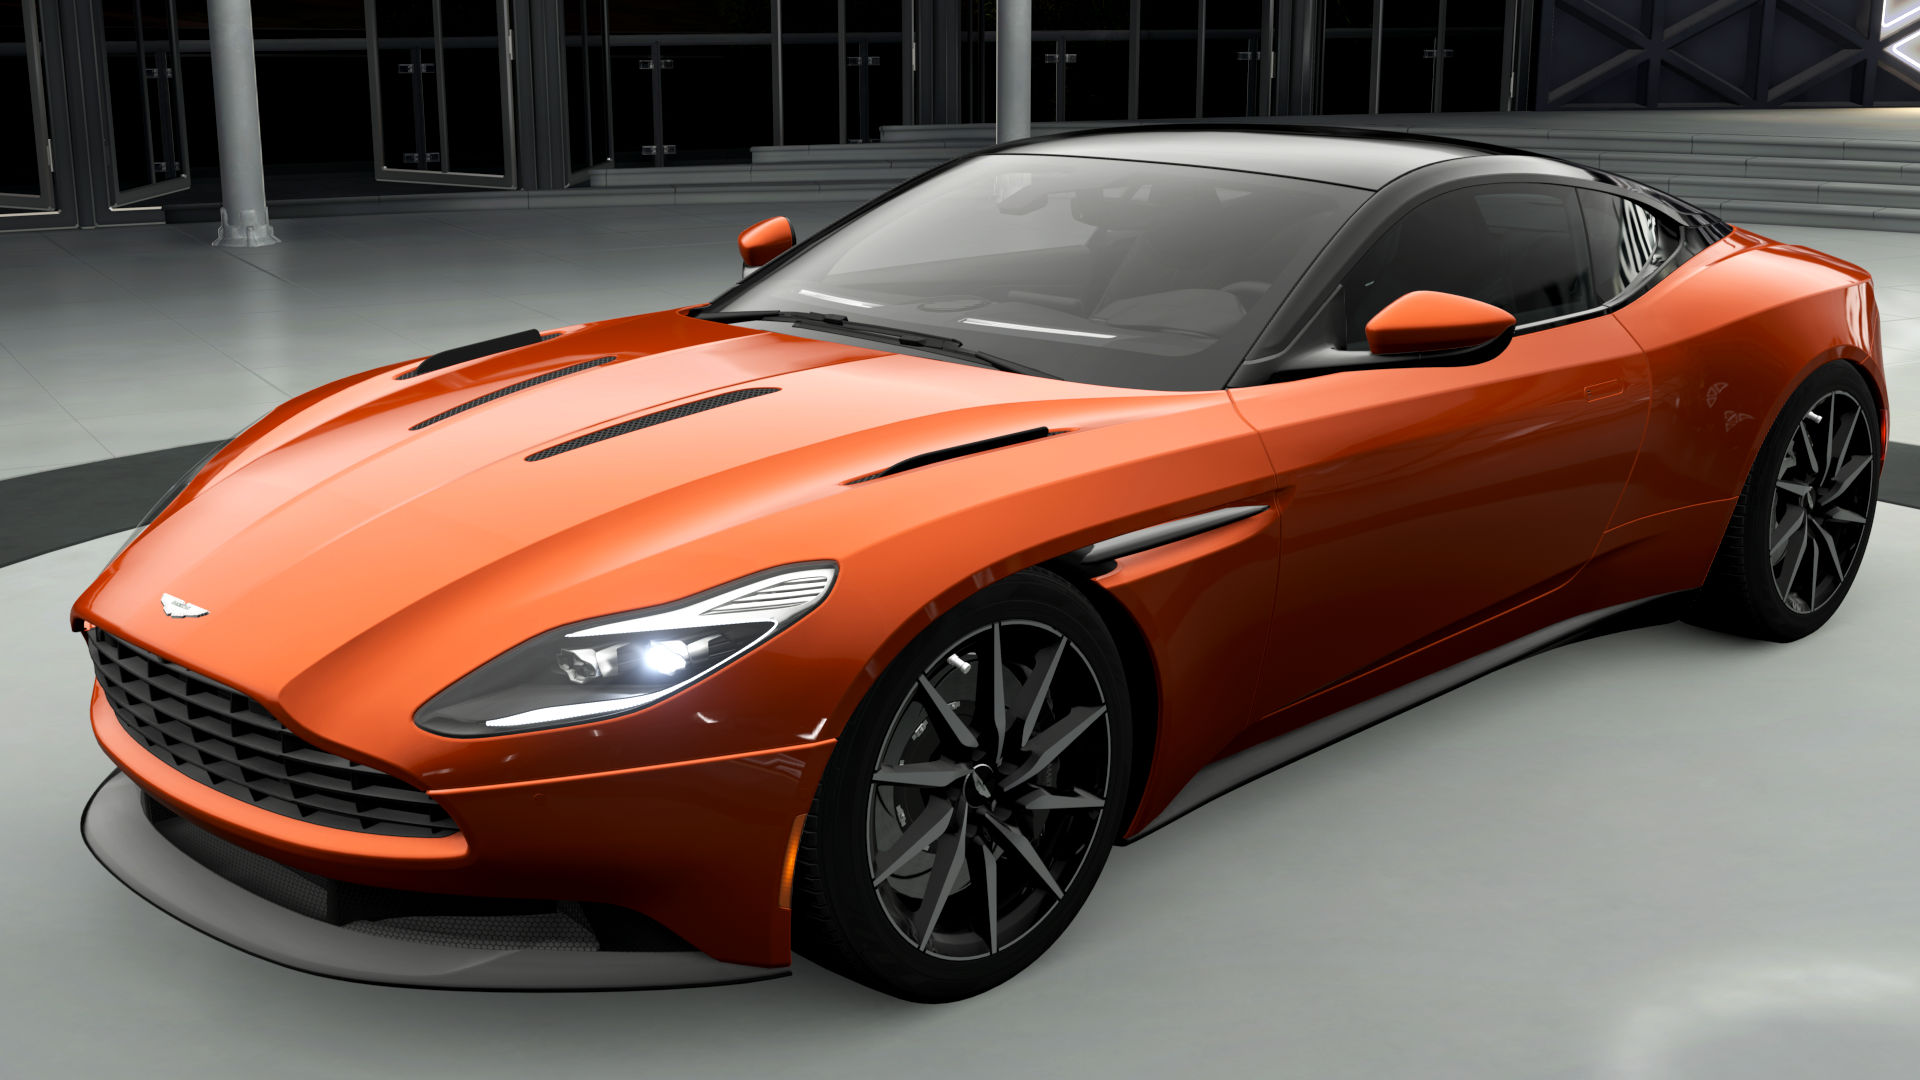 image - fh3 aston db11 17 front | forza motorsport wiki